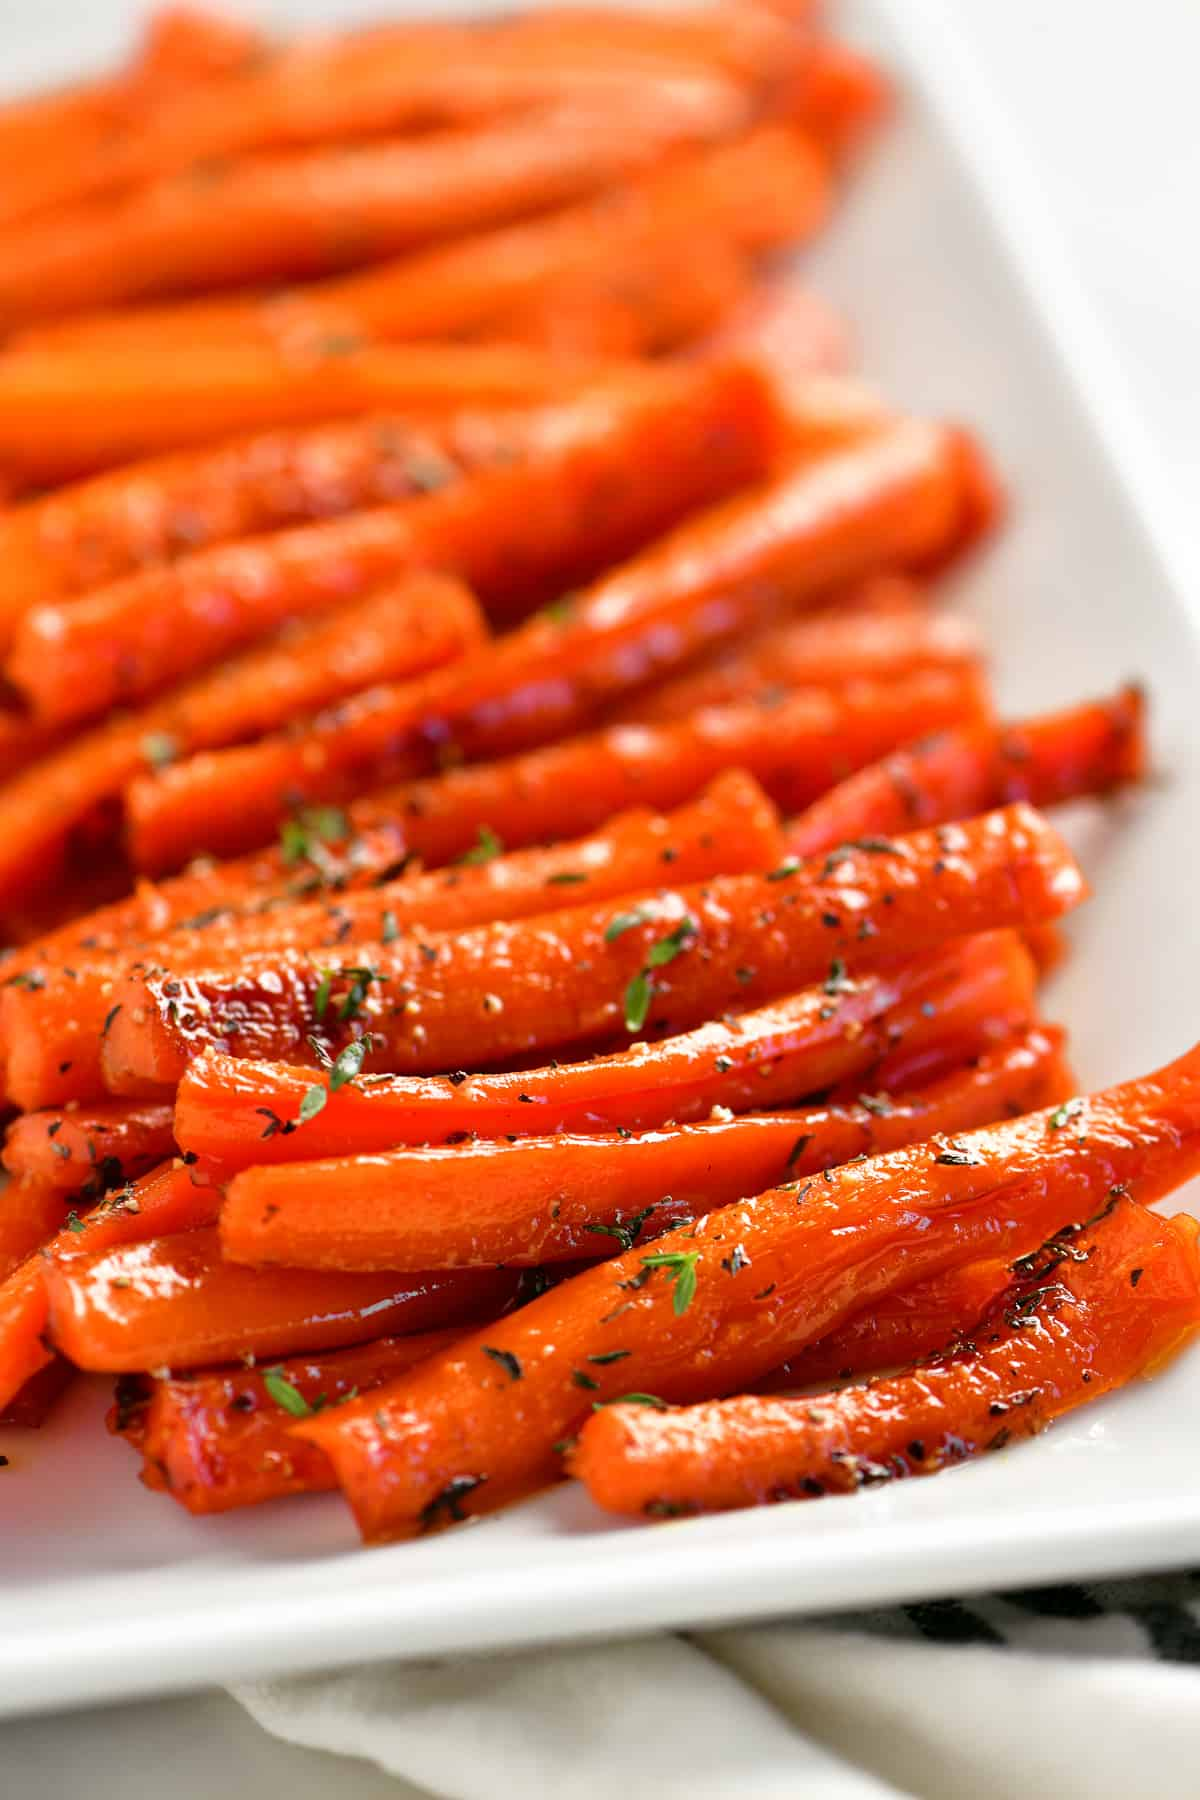 a close-up of the seasonings on the carrots